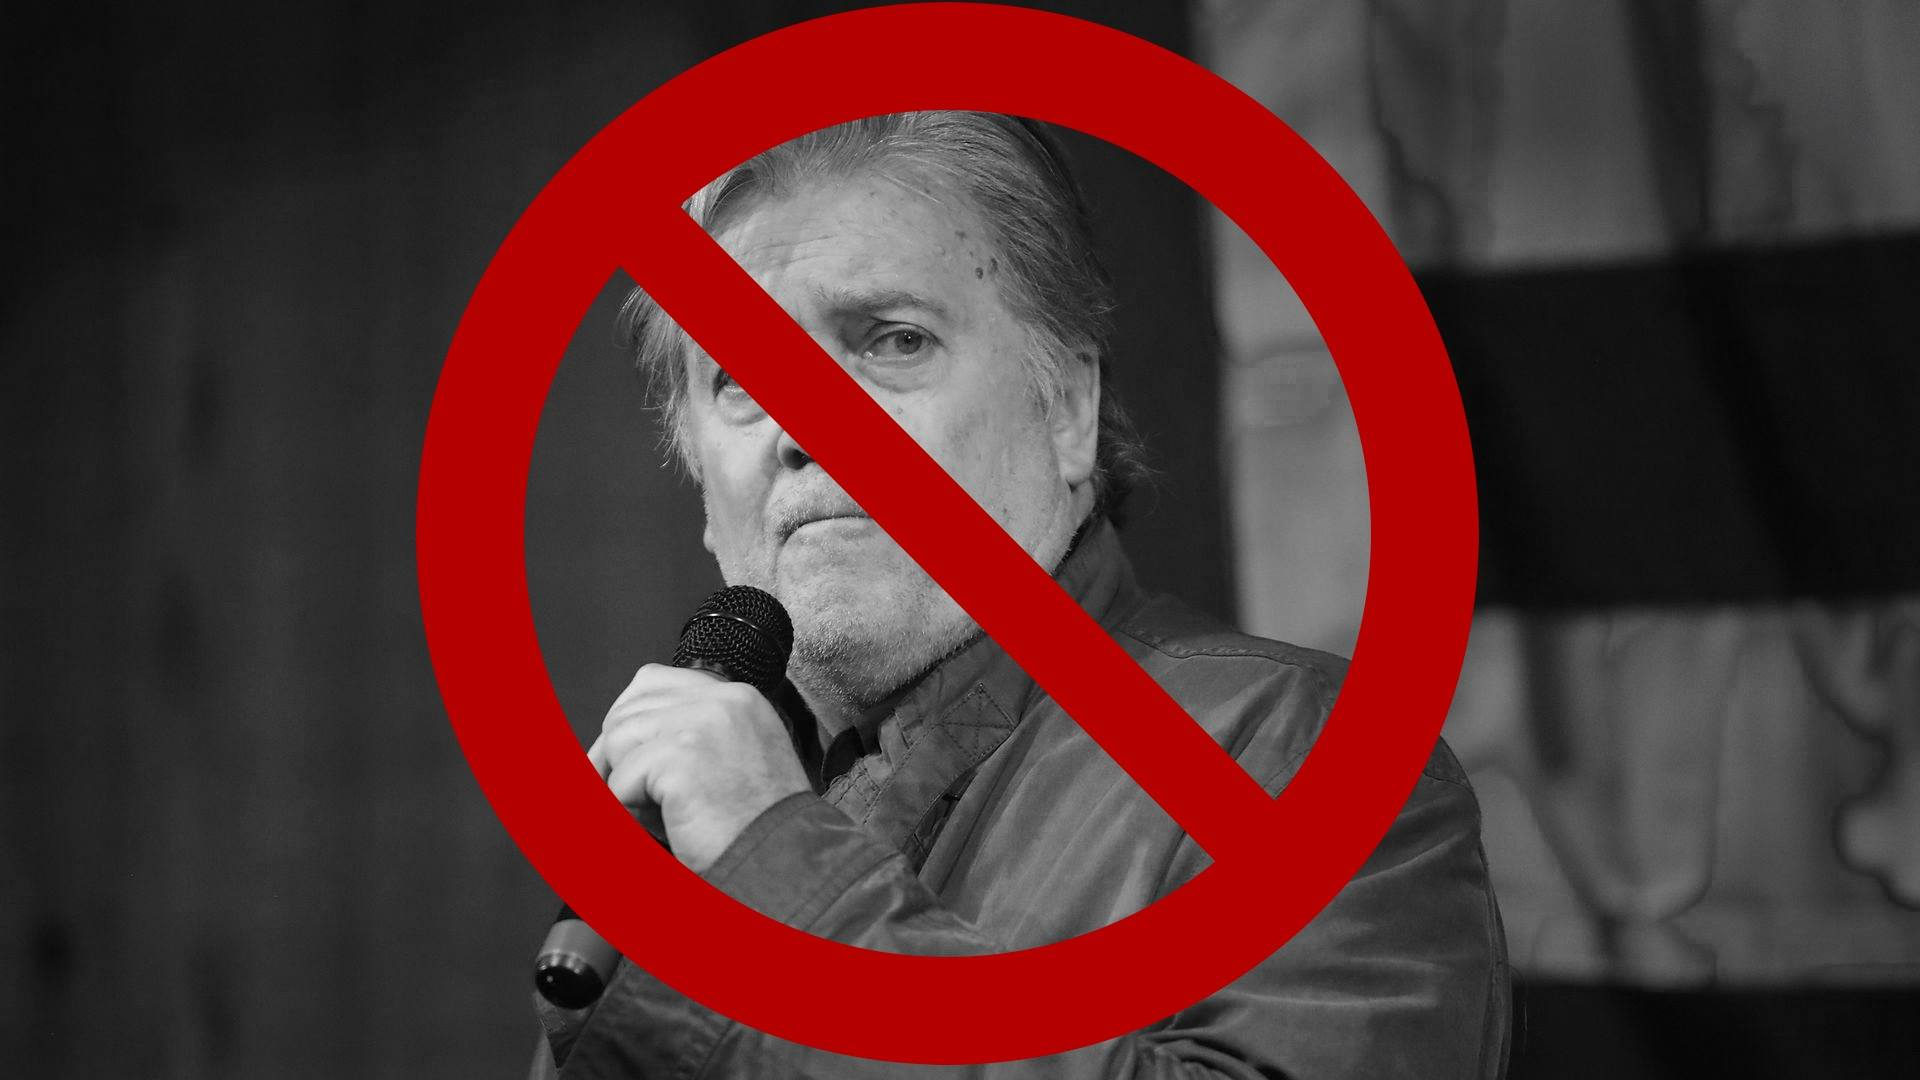 Image of Steve Bannon with a red circle with a slash through it superimposed on top.